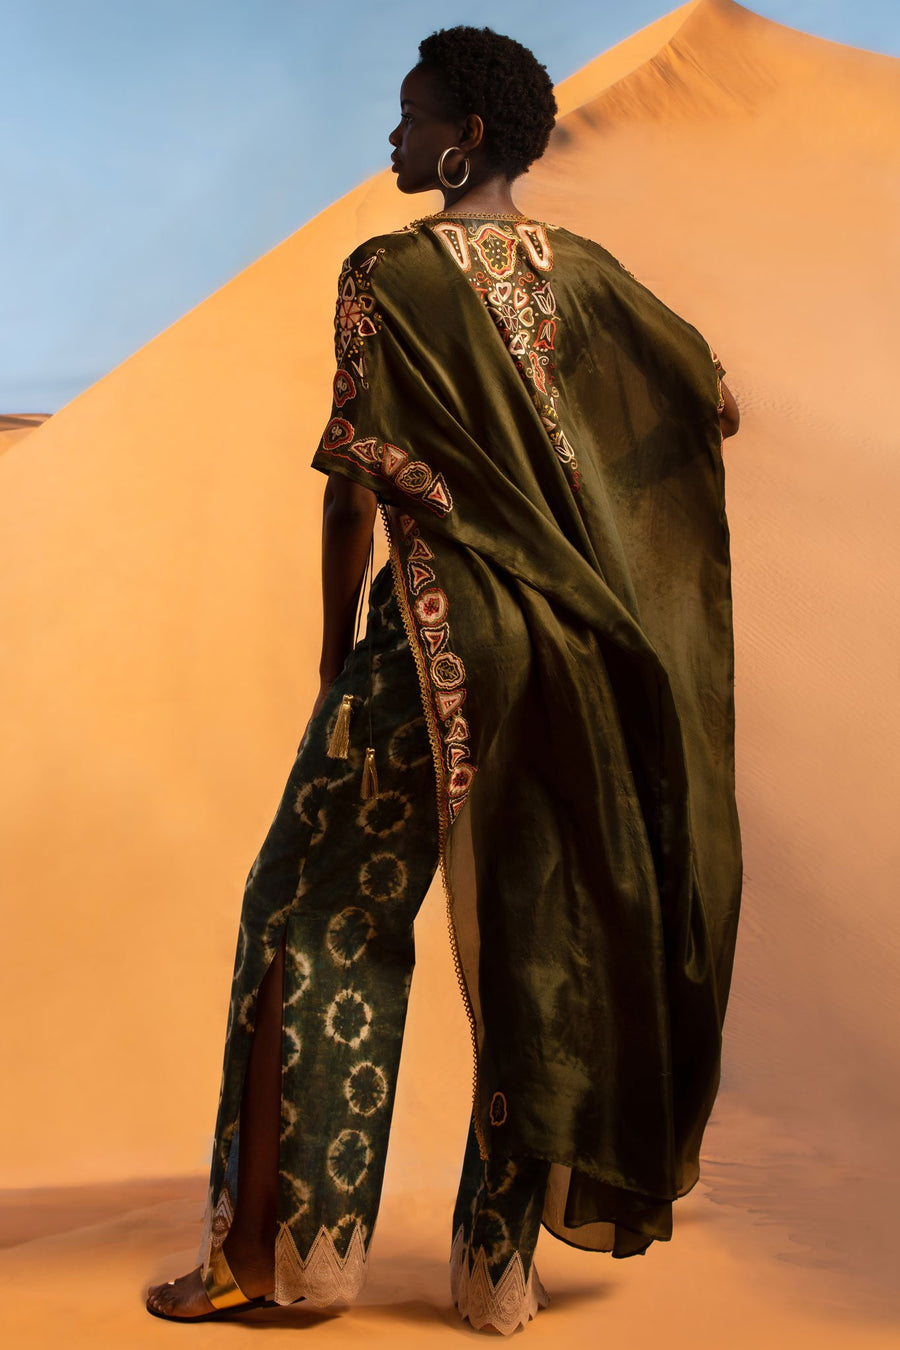 This is a photo of a woman wearing a silky dark green coat with colorful embroidery down the center back and along the armhole and side seams. She faces backwards and sticks one leg out to show her tie-dye inspired shibori printed pants with side left slit.